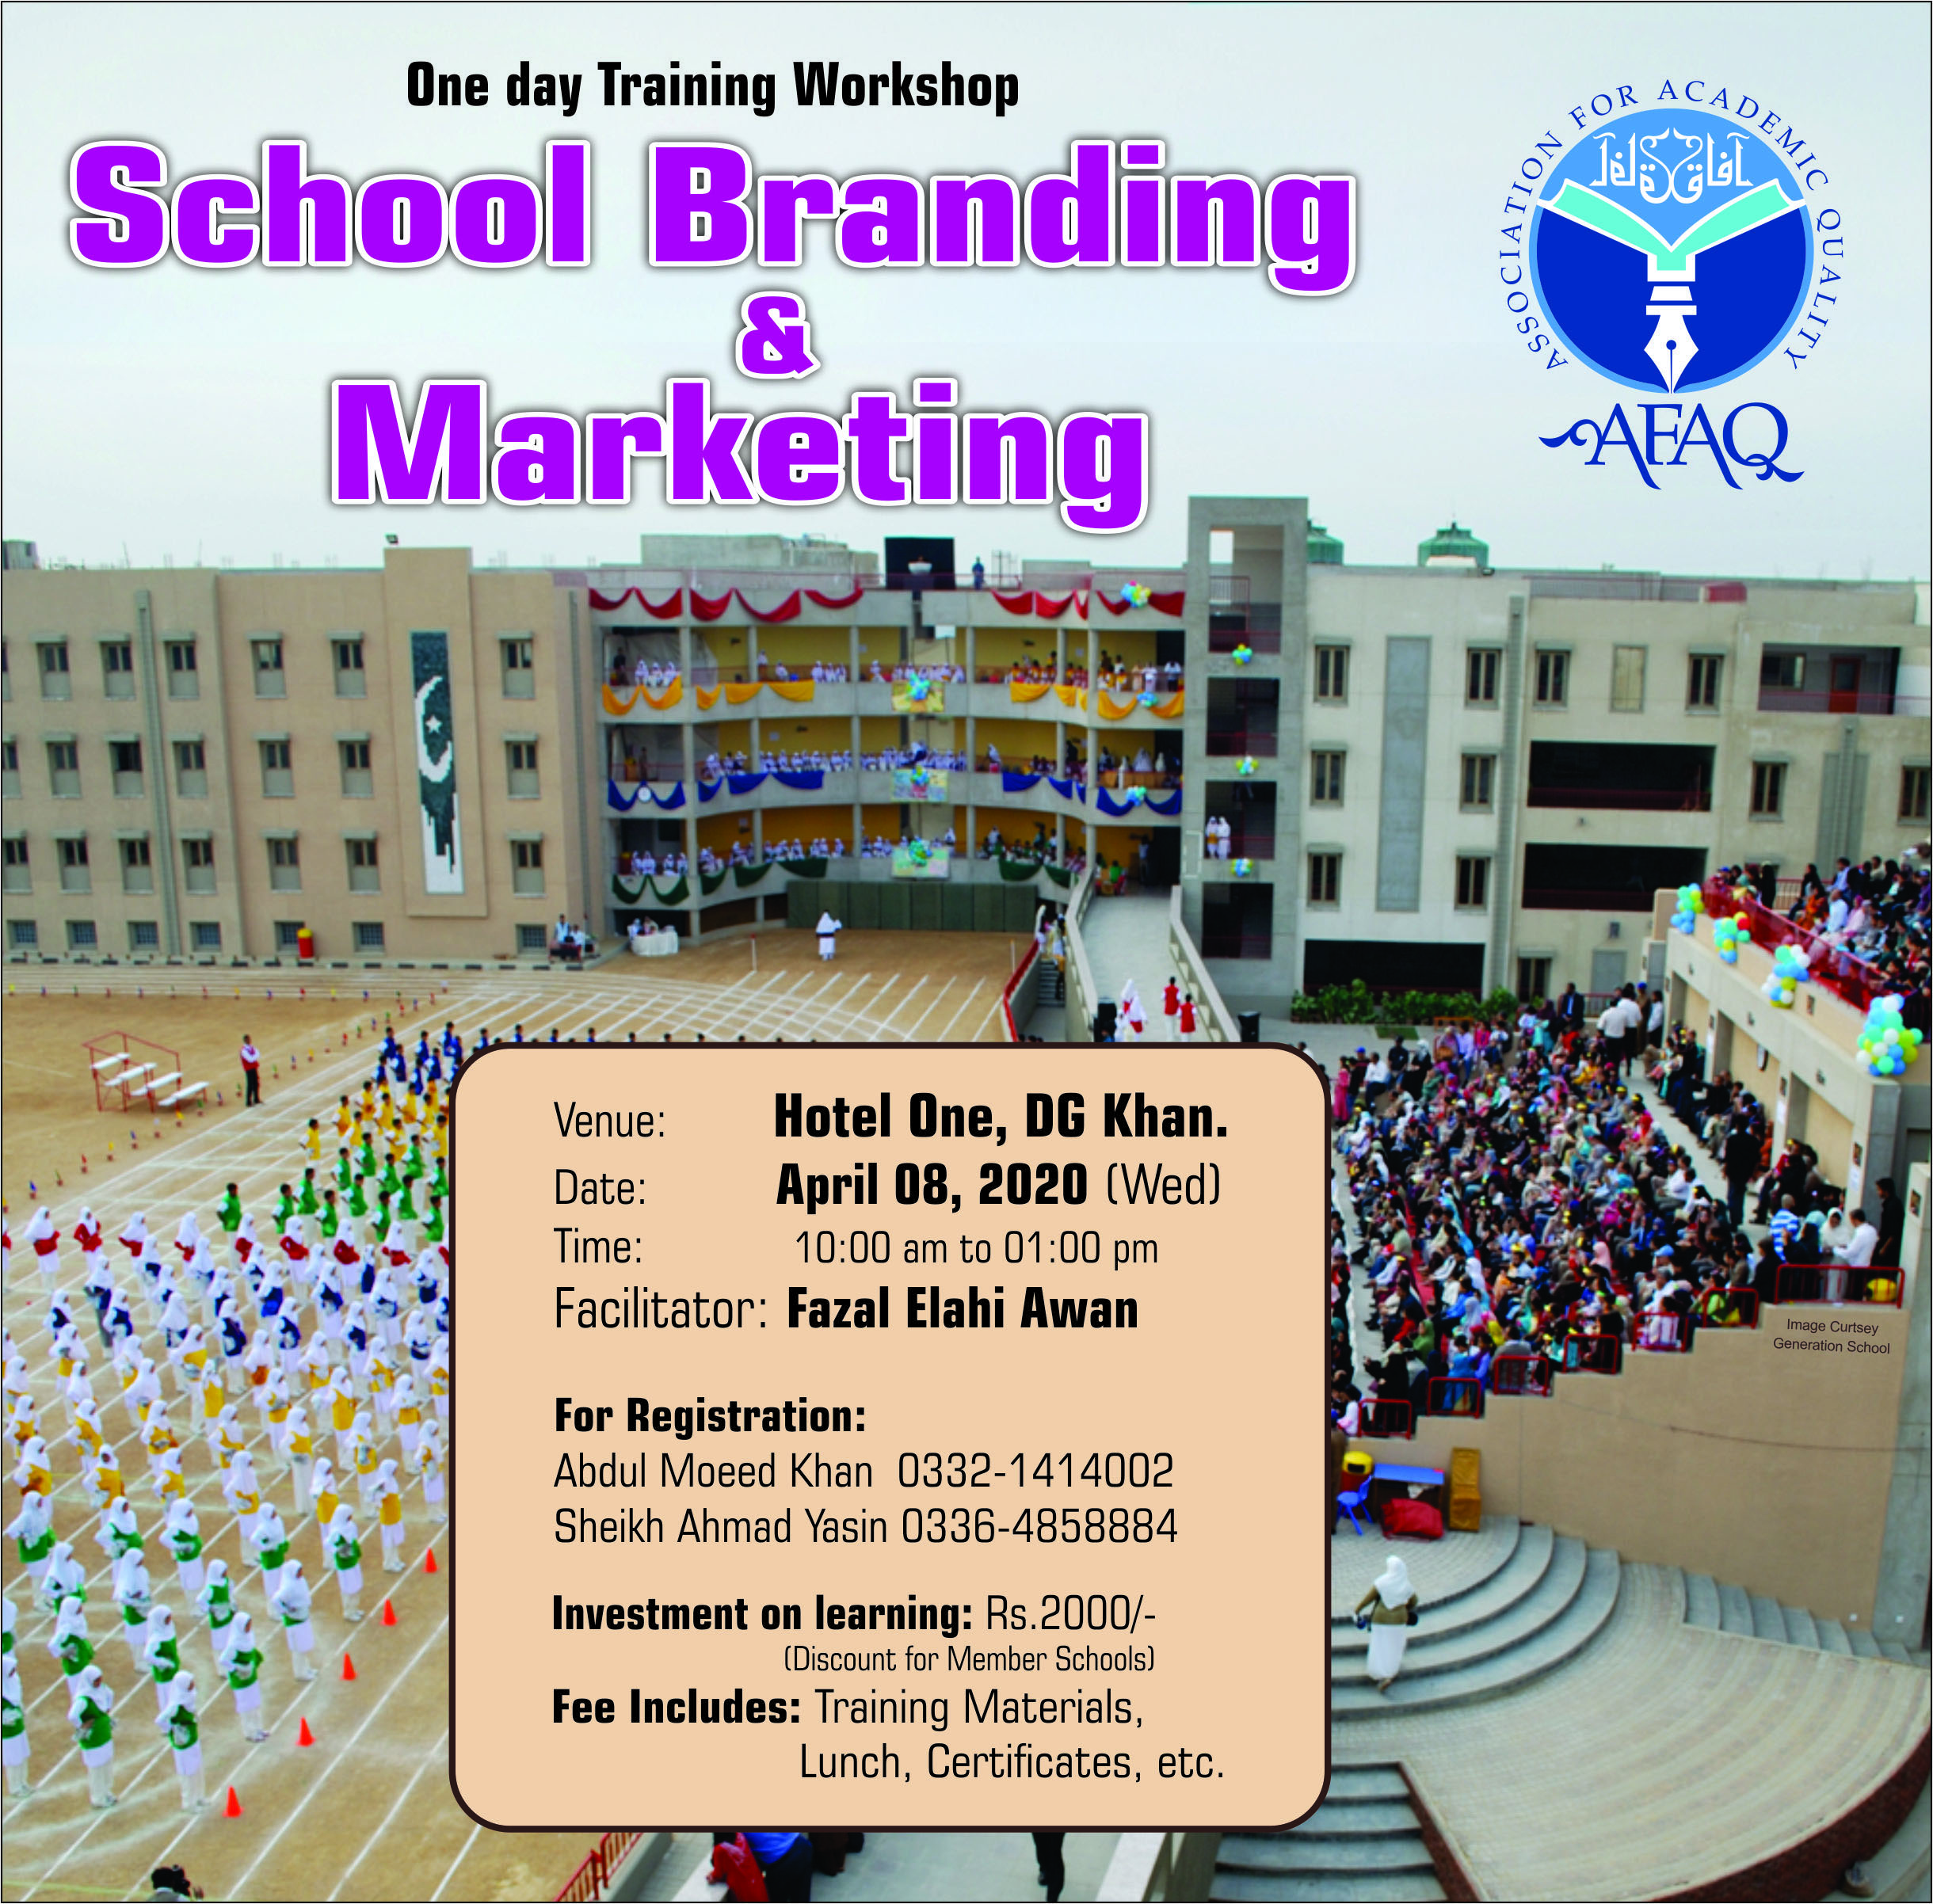 School Branding and Marketing Social Media Post 9-3-2020